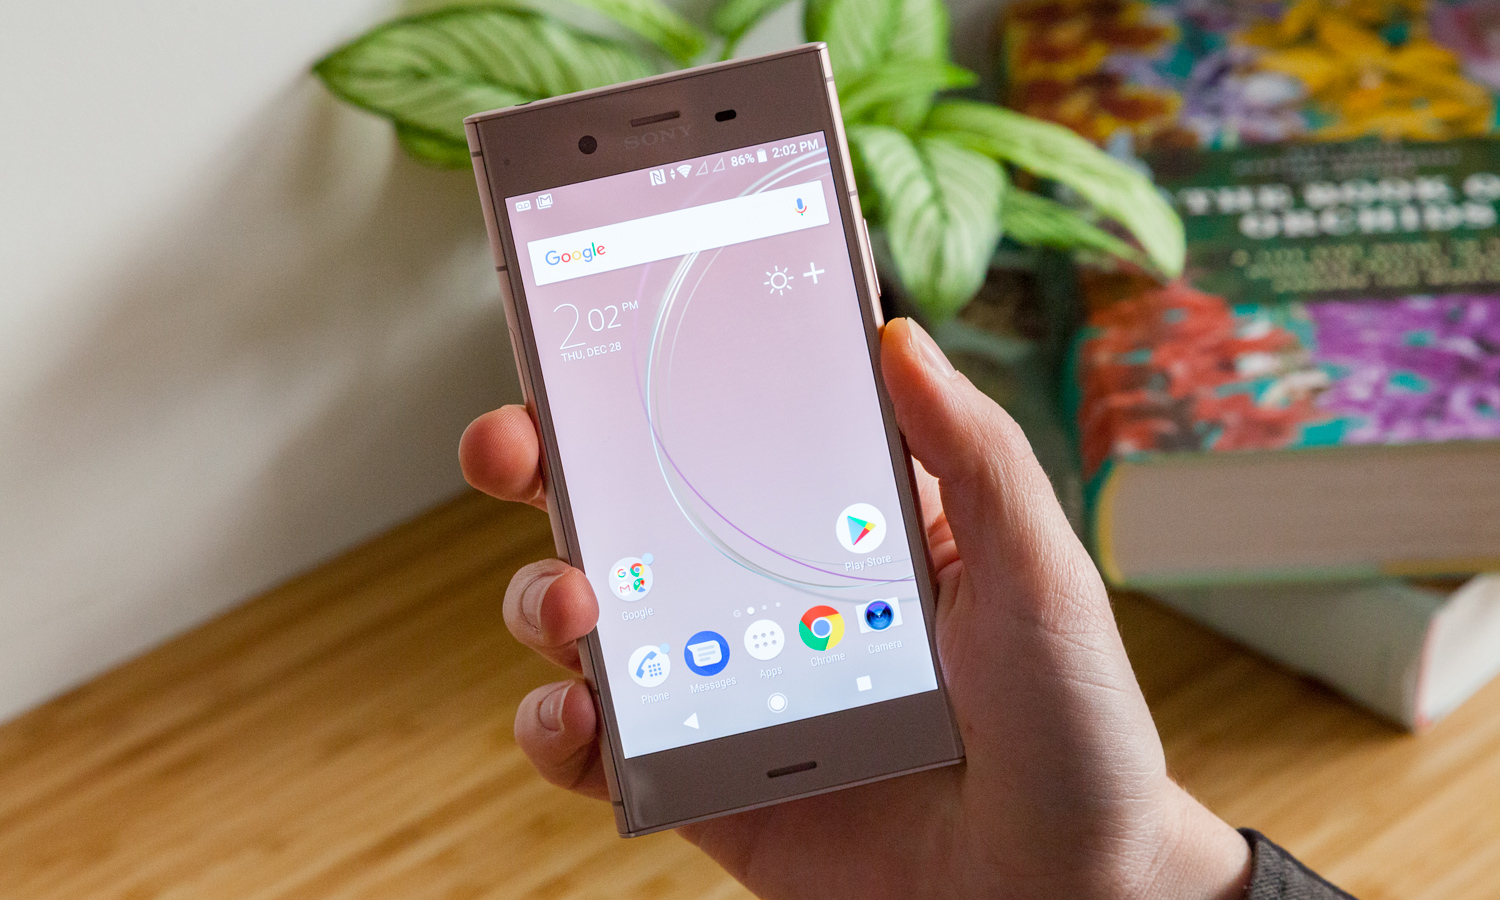 Xperia XZ1 Review: This Sony Phone Is Stuck in the Past